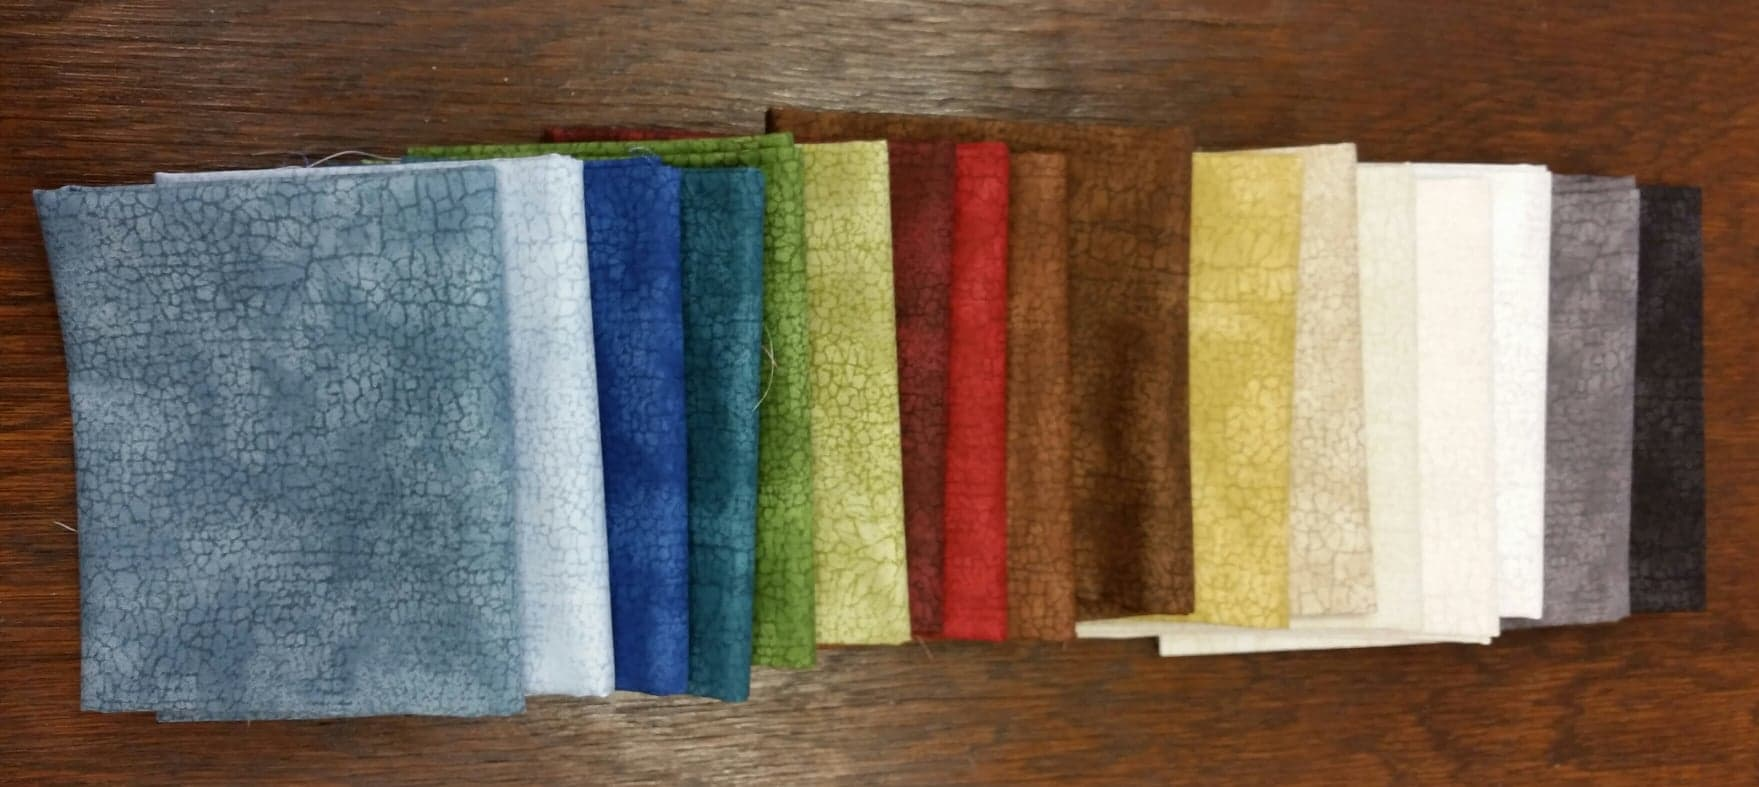 17 Fats- Assorted Crackle Fabric (4 1/4 yards!)